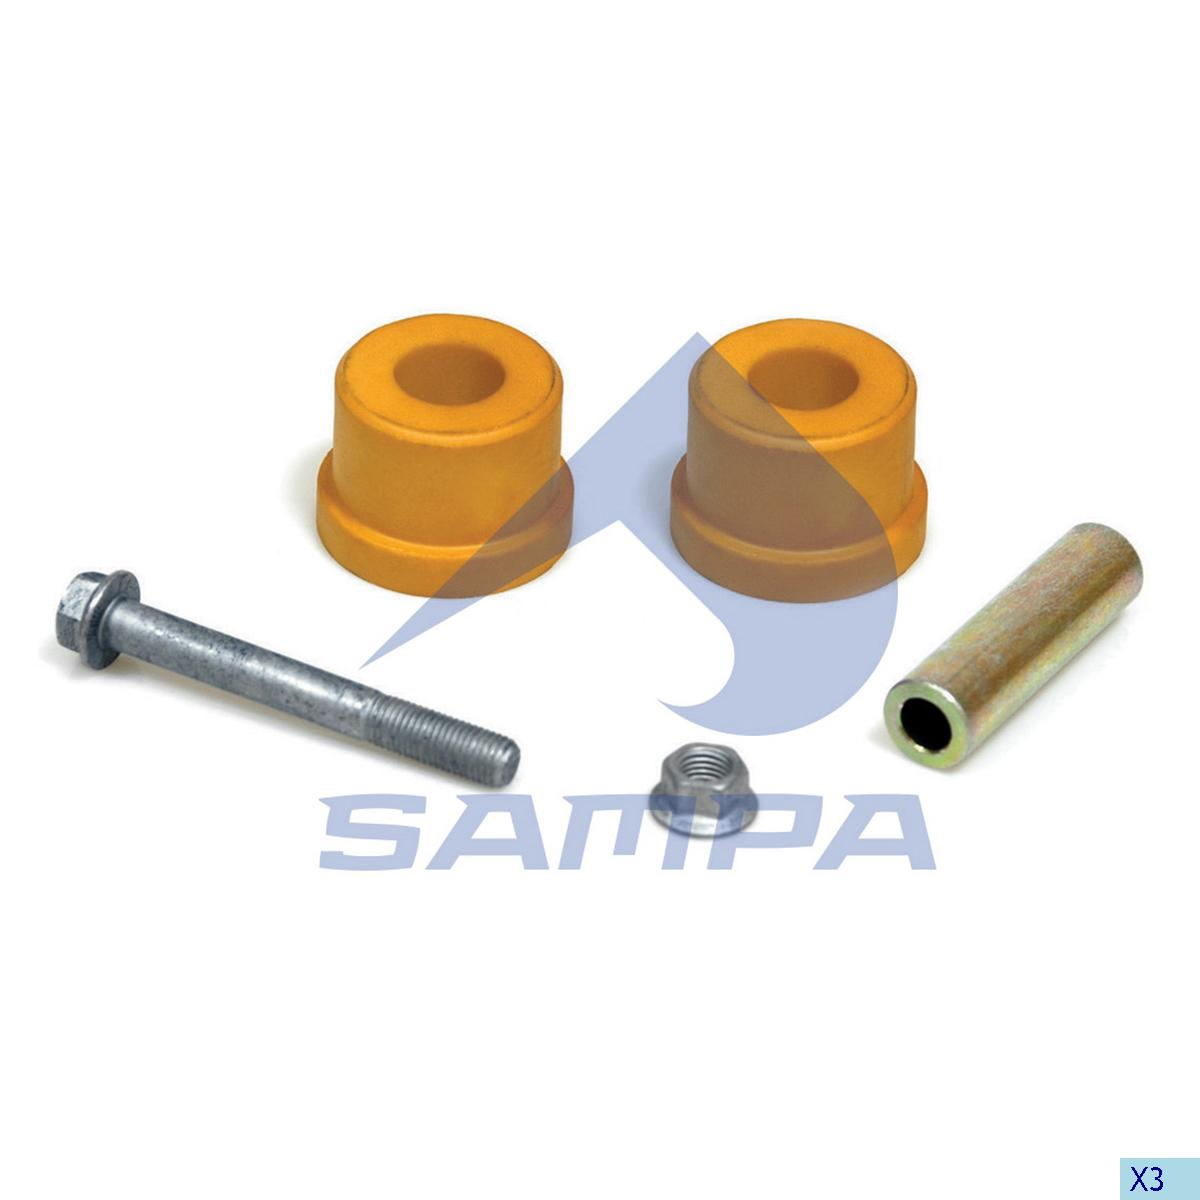 Repair Kit, Cab, Man, Cab